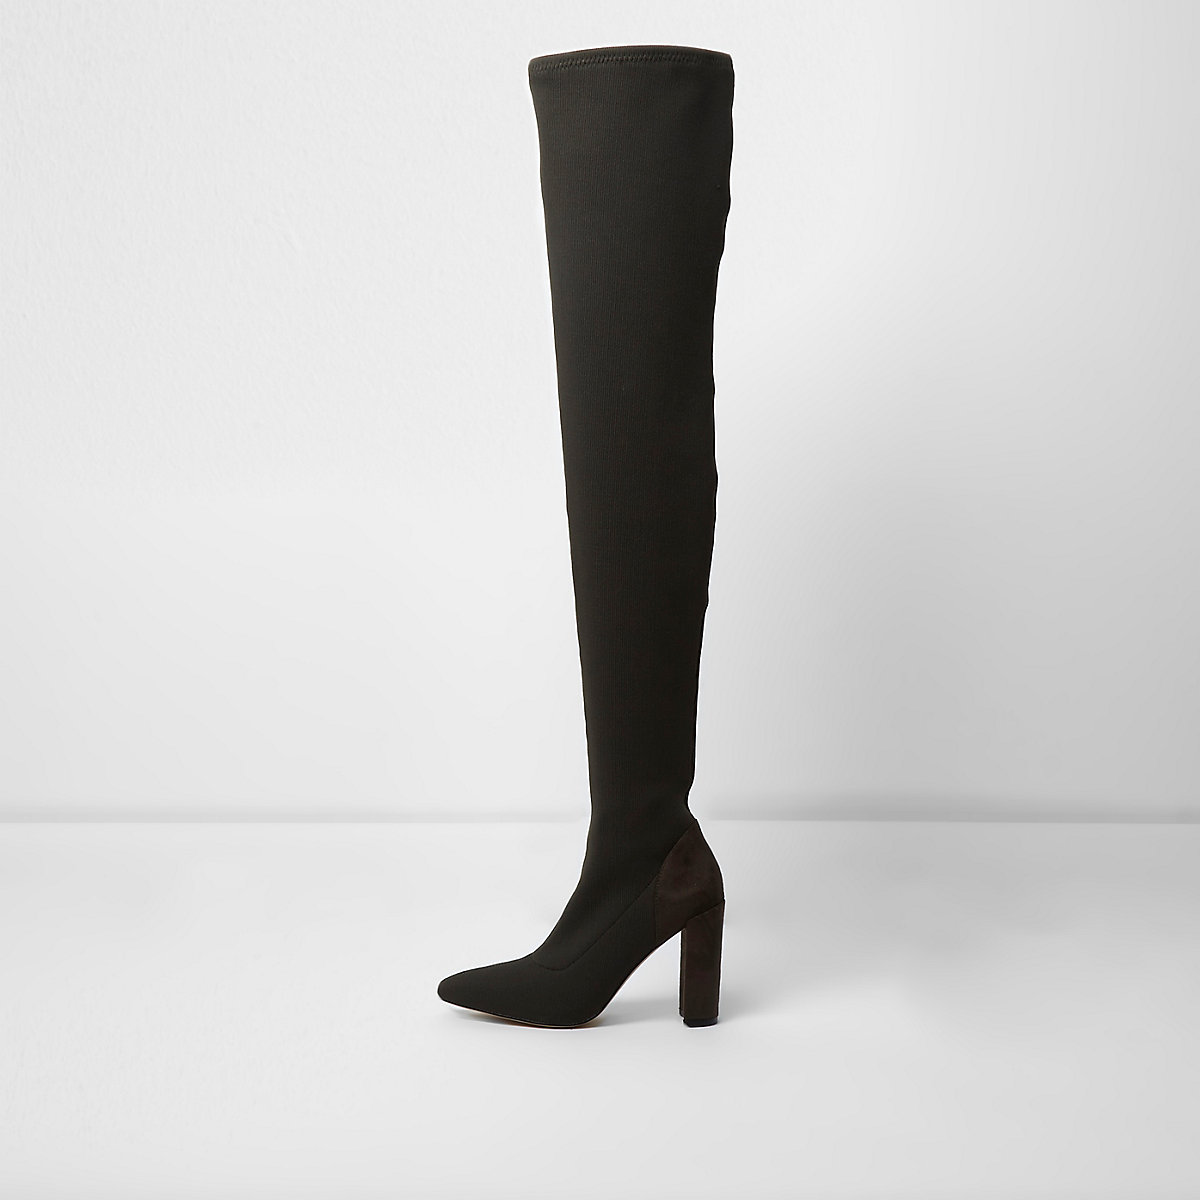 5c93f1a1a2a Khaki green rib knit over the knee boots - Shoes   Boots - Sale - women